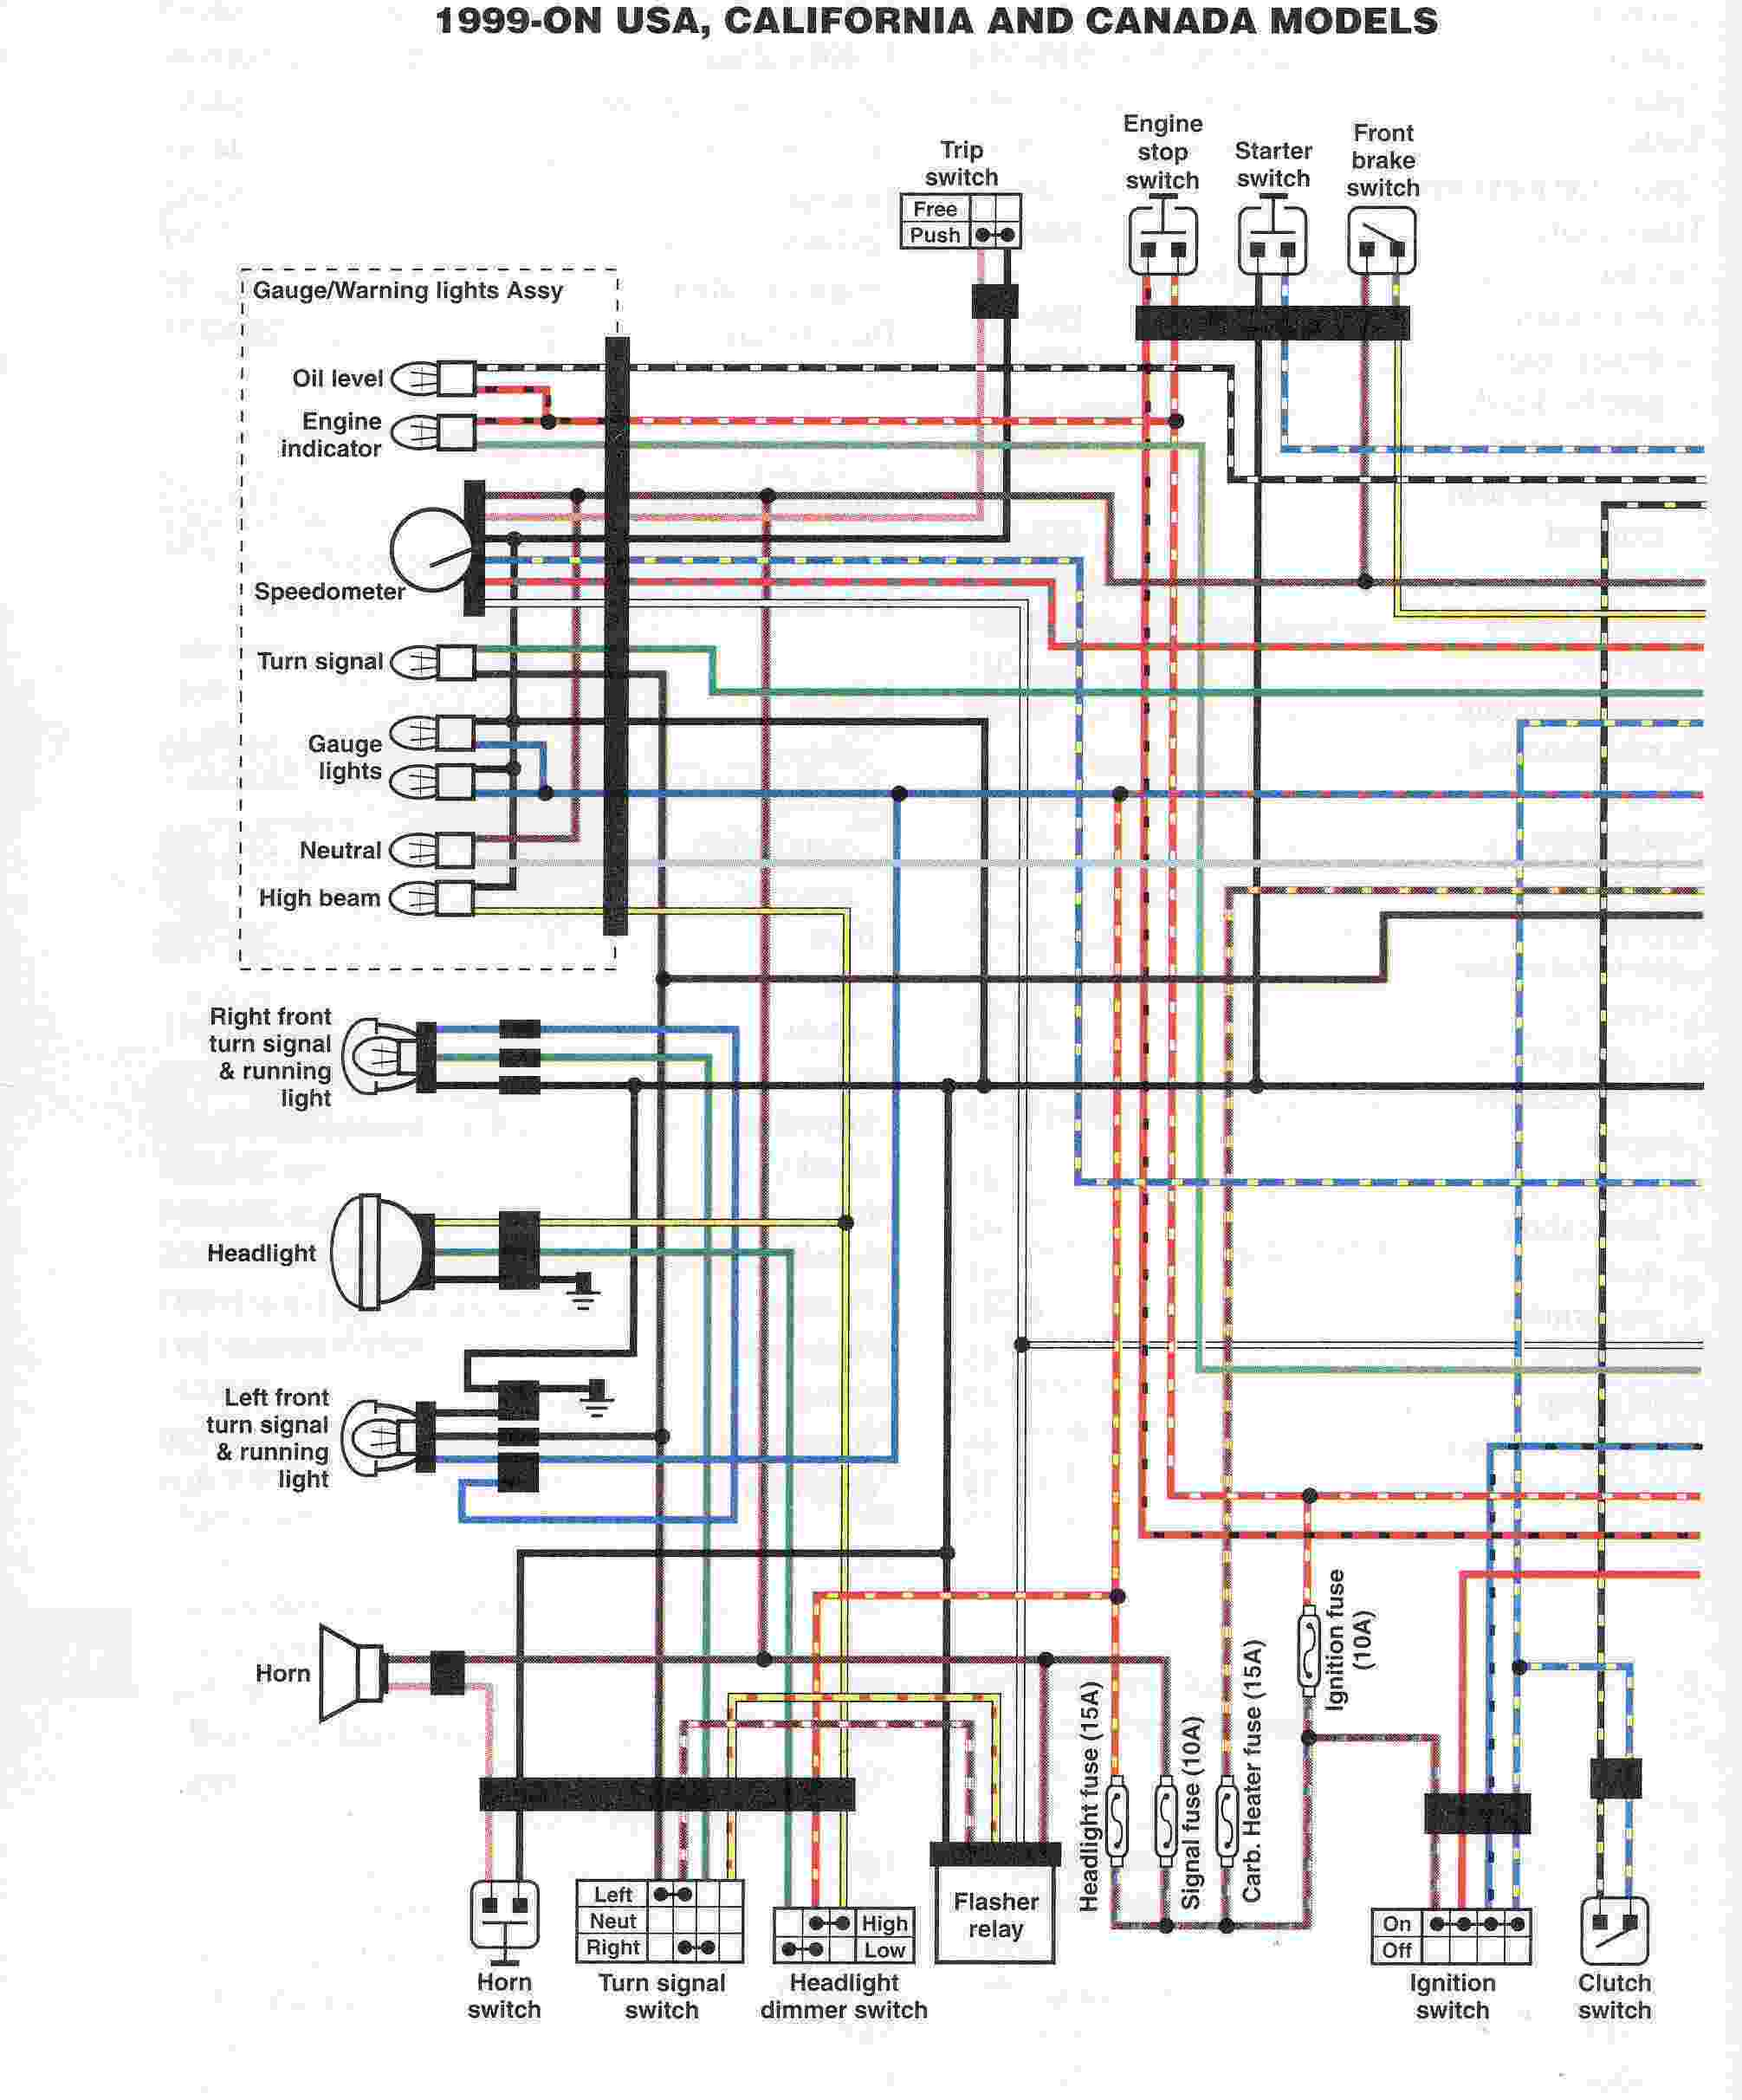 2003 Yamaha Road Star Wiring Diagram - wiring diagram wave-internal -  wave-internal.comune-farini-pc.it | 2003 Yamaha Road Star Wiring Diagram |  | comune-farini-pc.it